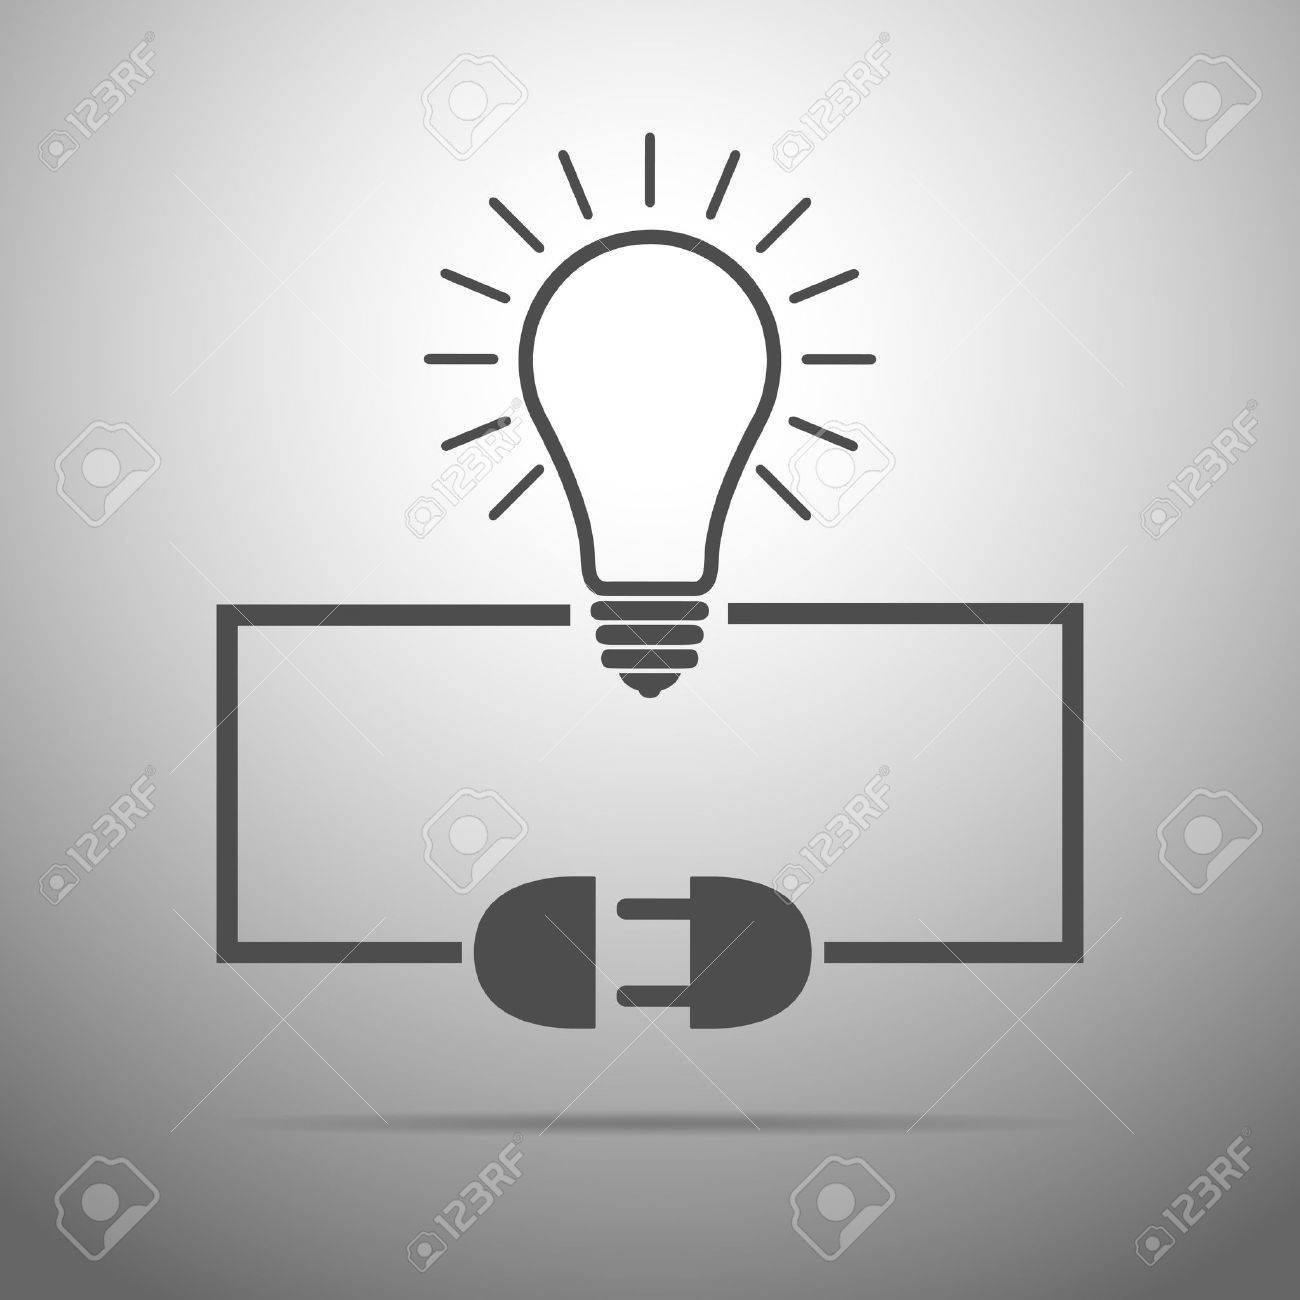 Light Bulb, Wire Plug And Socket - Illustration. Concept Connection ...